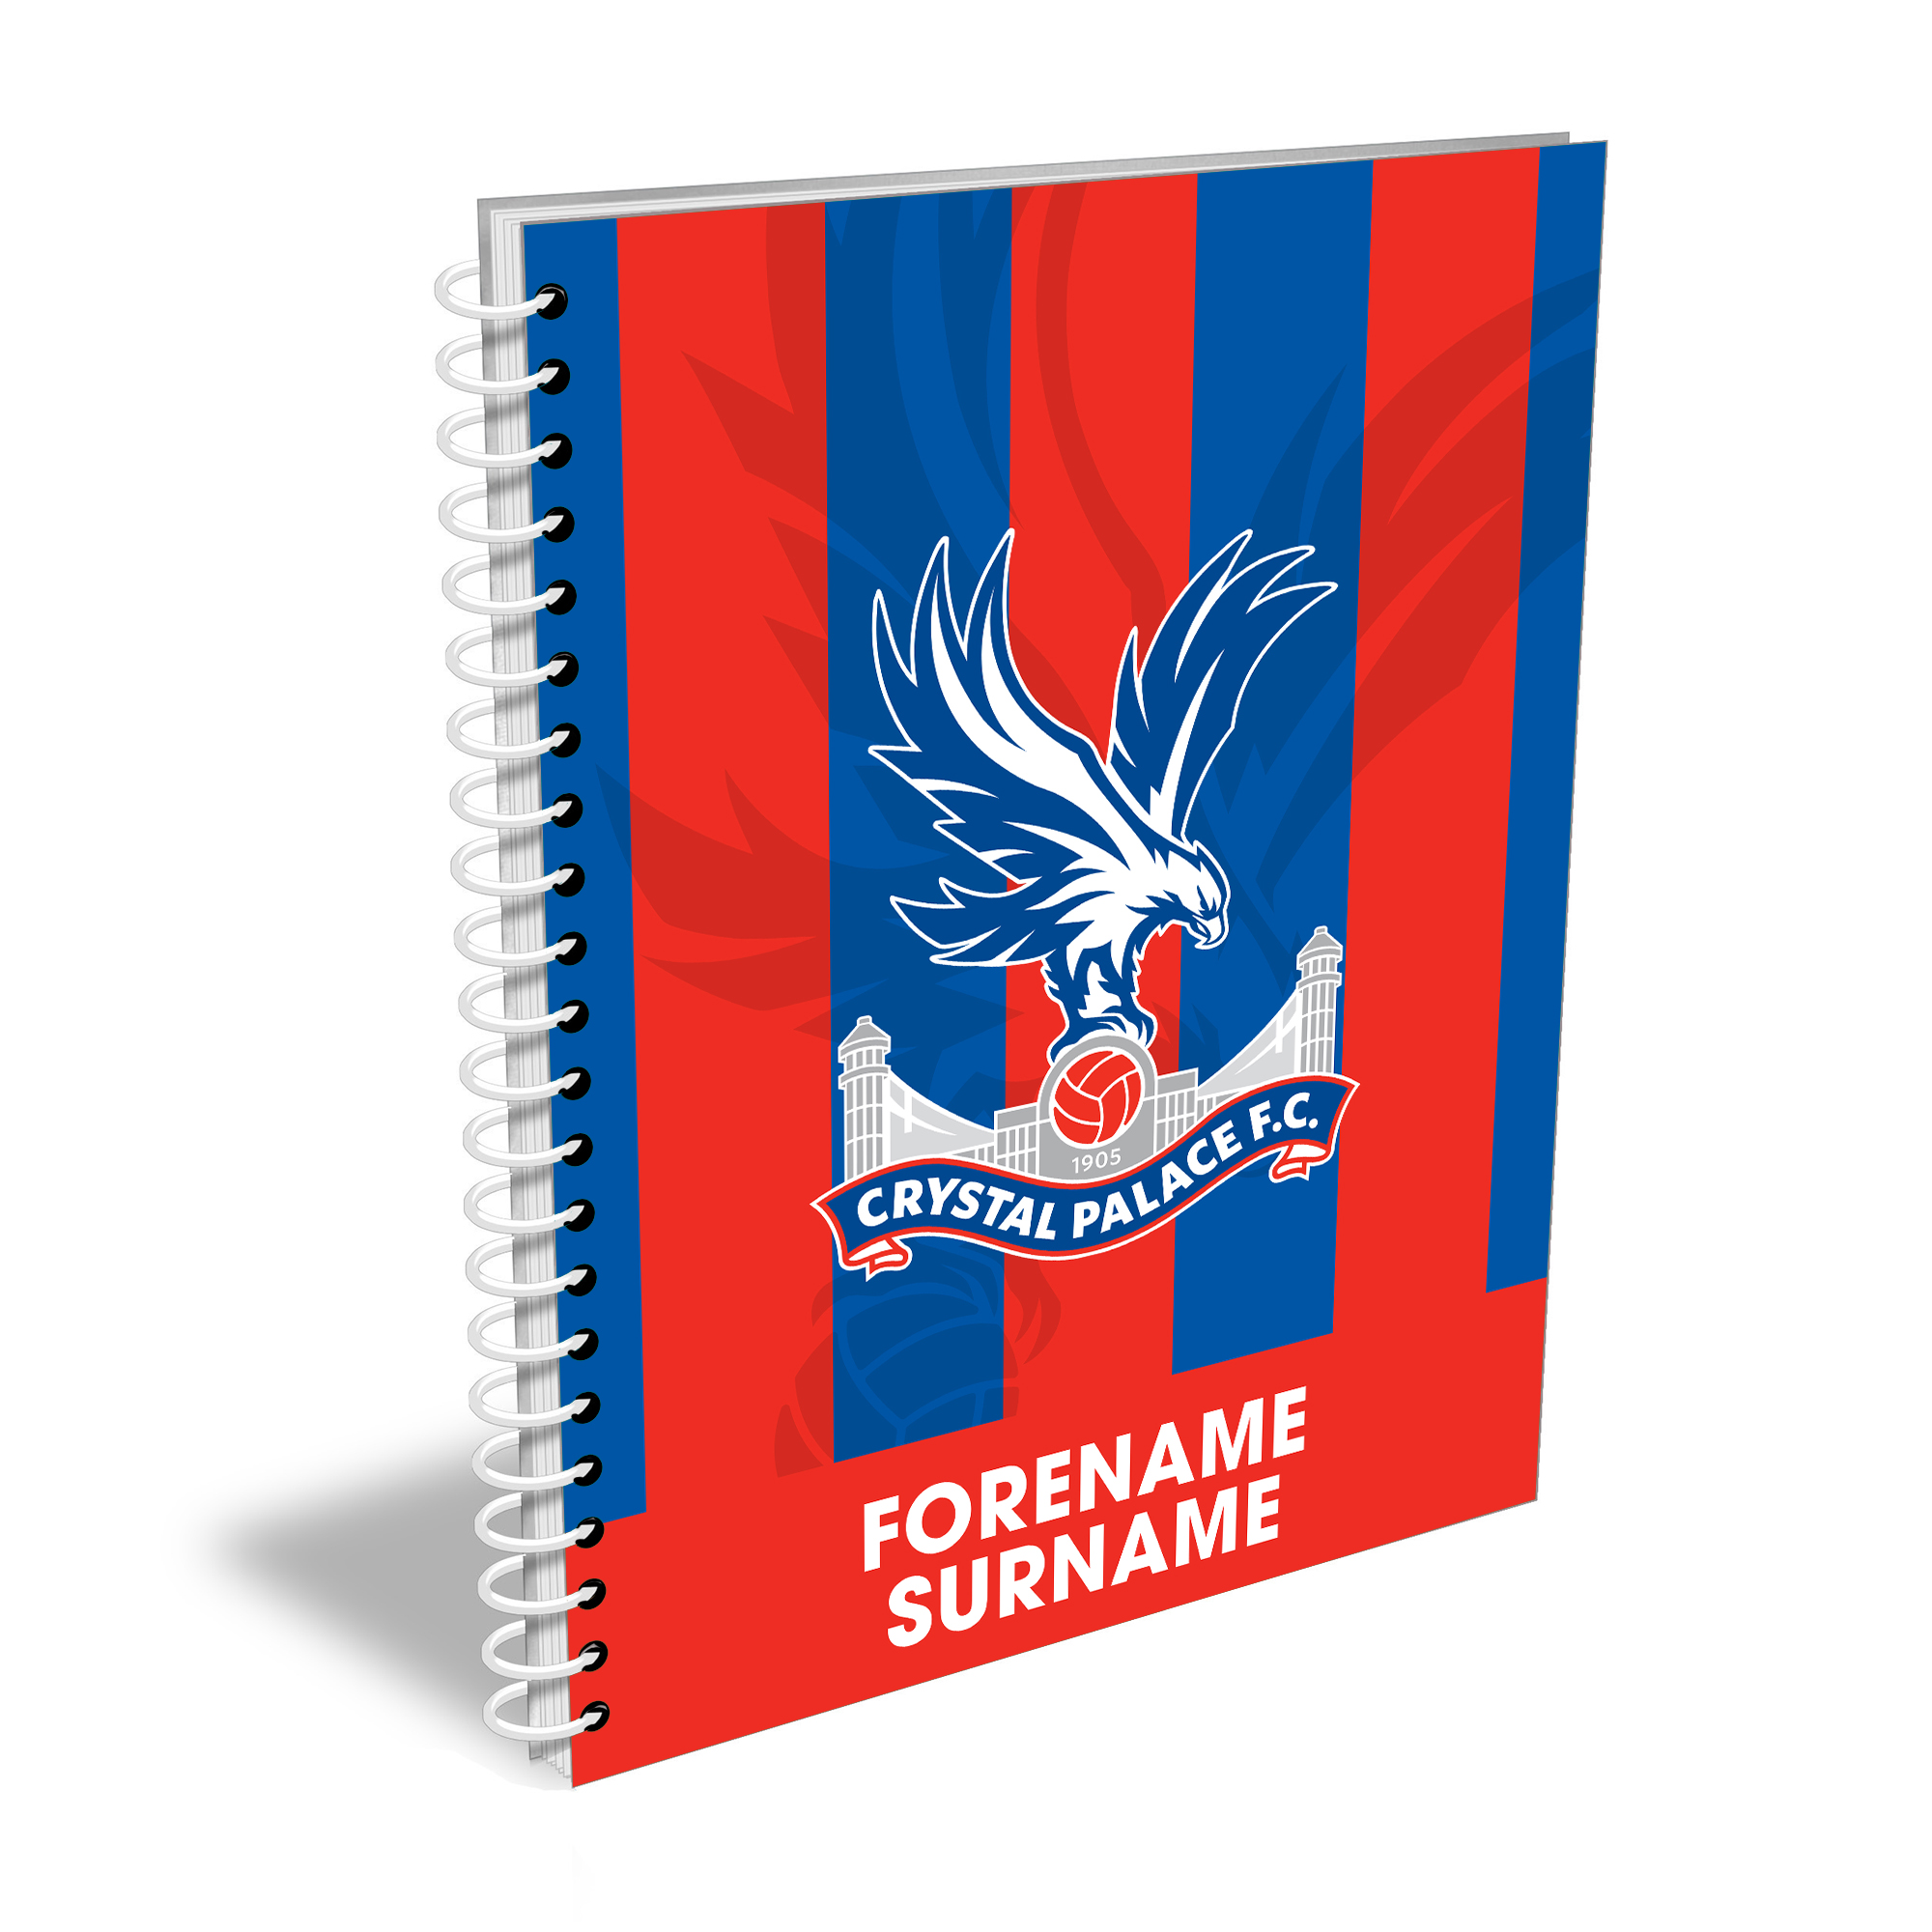 Crystal Palace FC Bold Crest Notebook